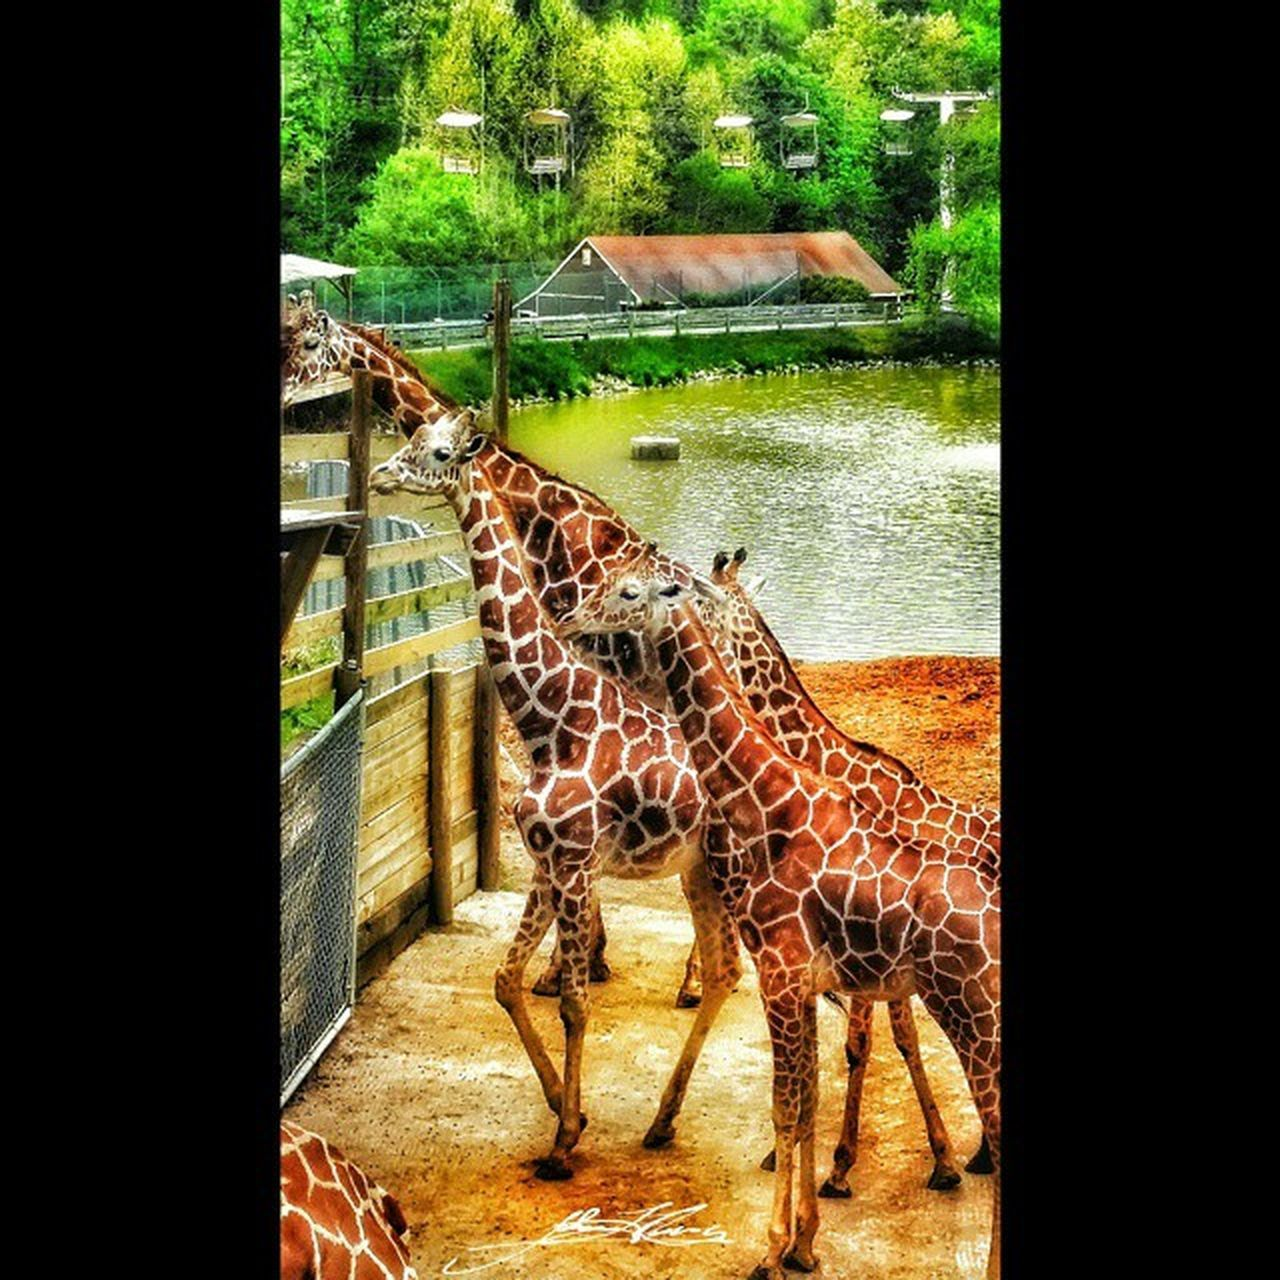 Squareinstapic Colorful Food HDR Nature Petsandanimals Photography Spring Pettingzoo Richmondmetrozoo Giraffes Zooanimals Wildlife FamilyTime Giraffesarecool Richmondmetrozoo Feedinggiraffes